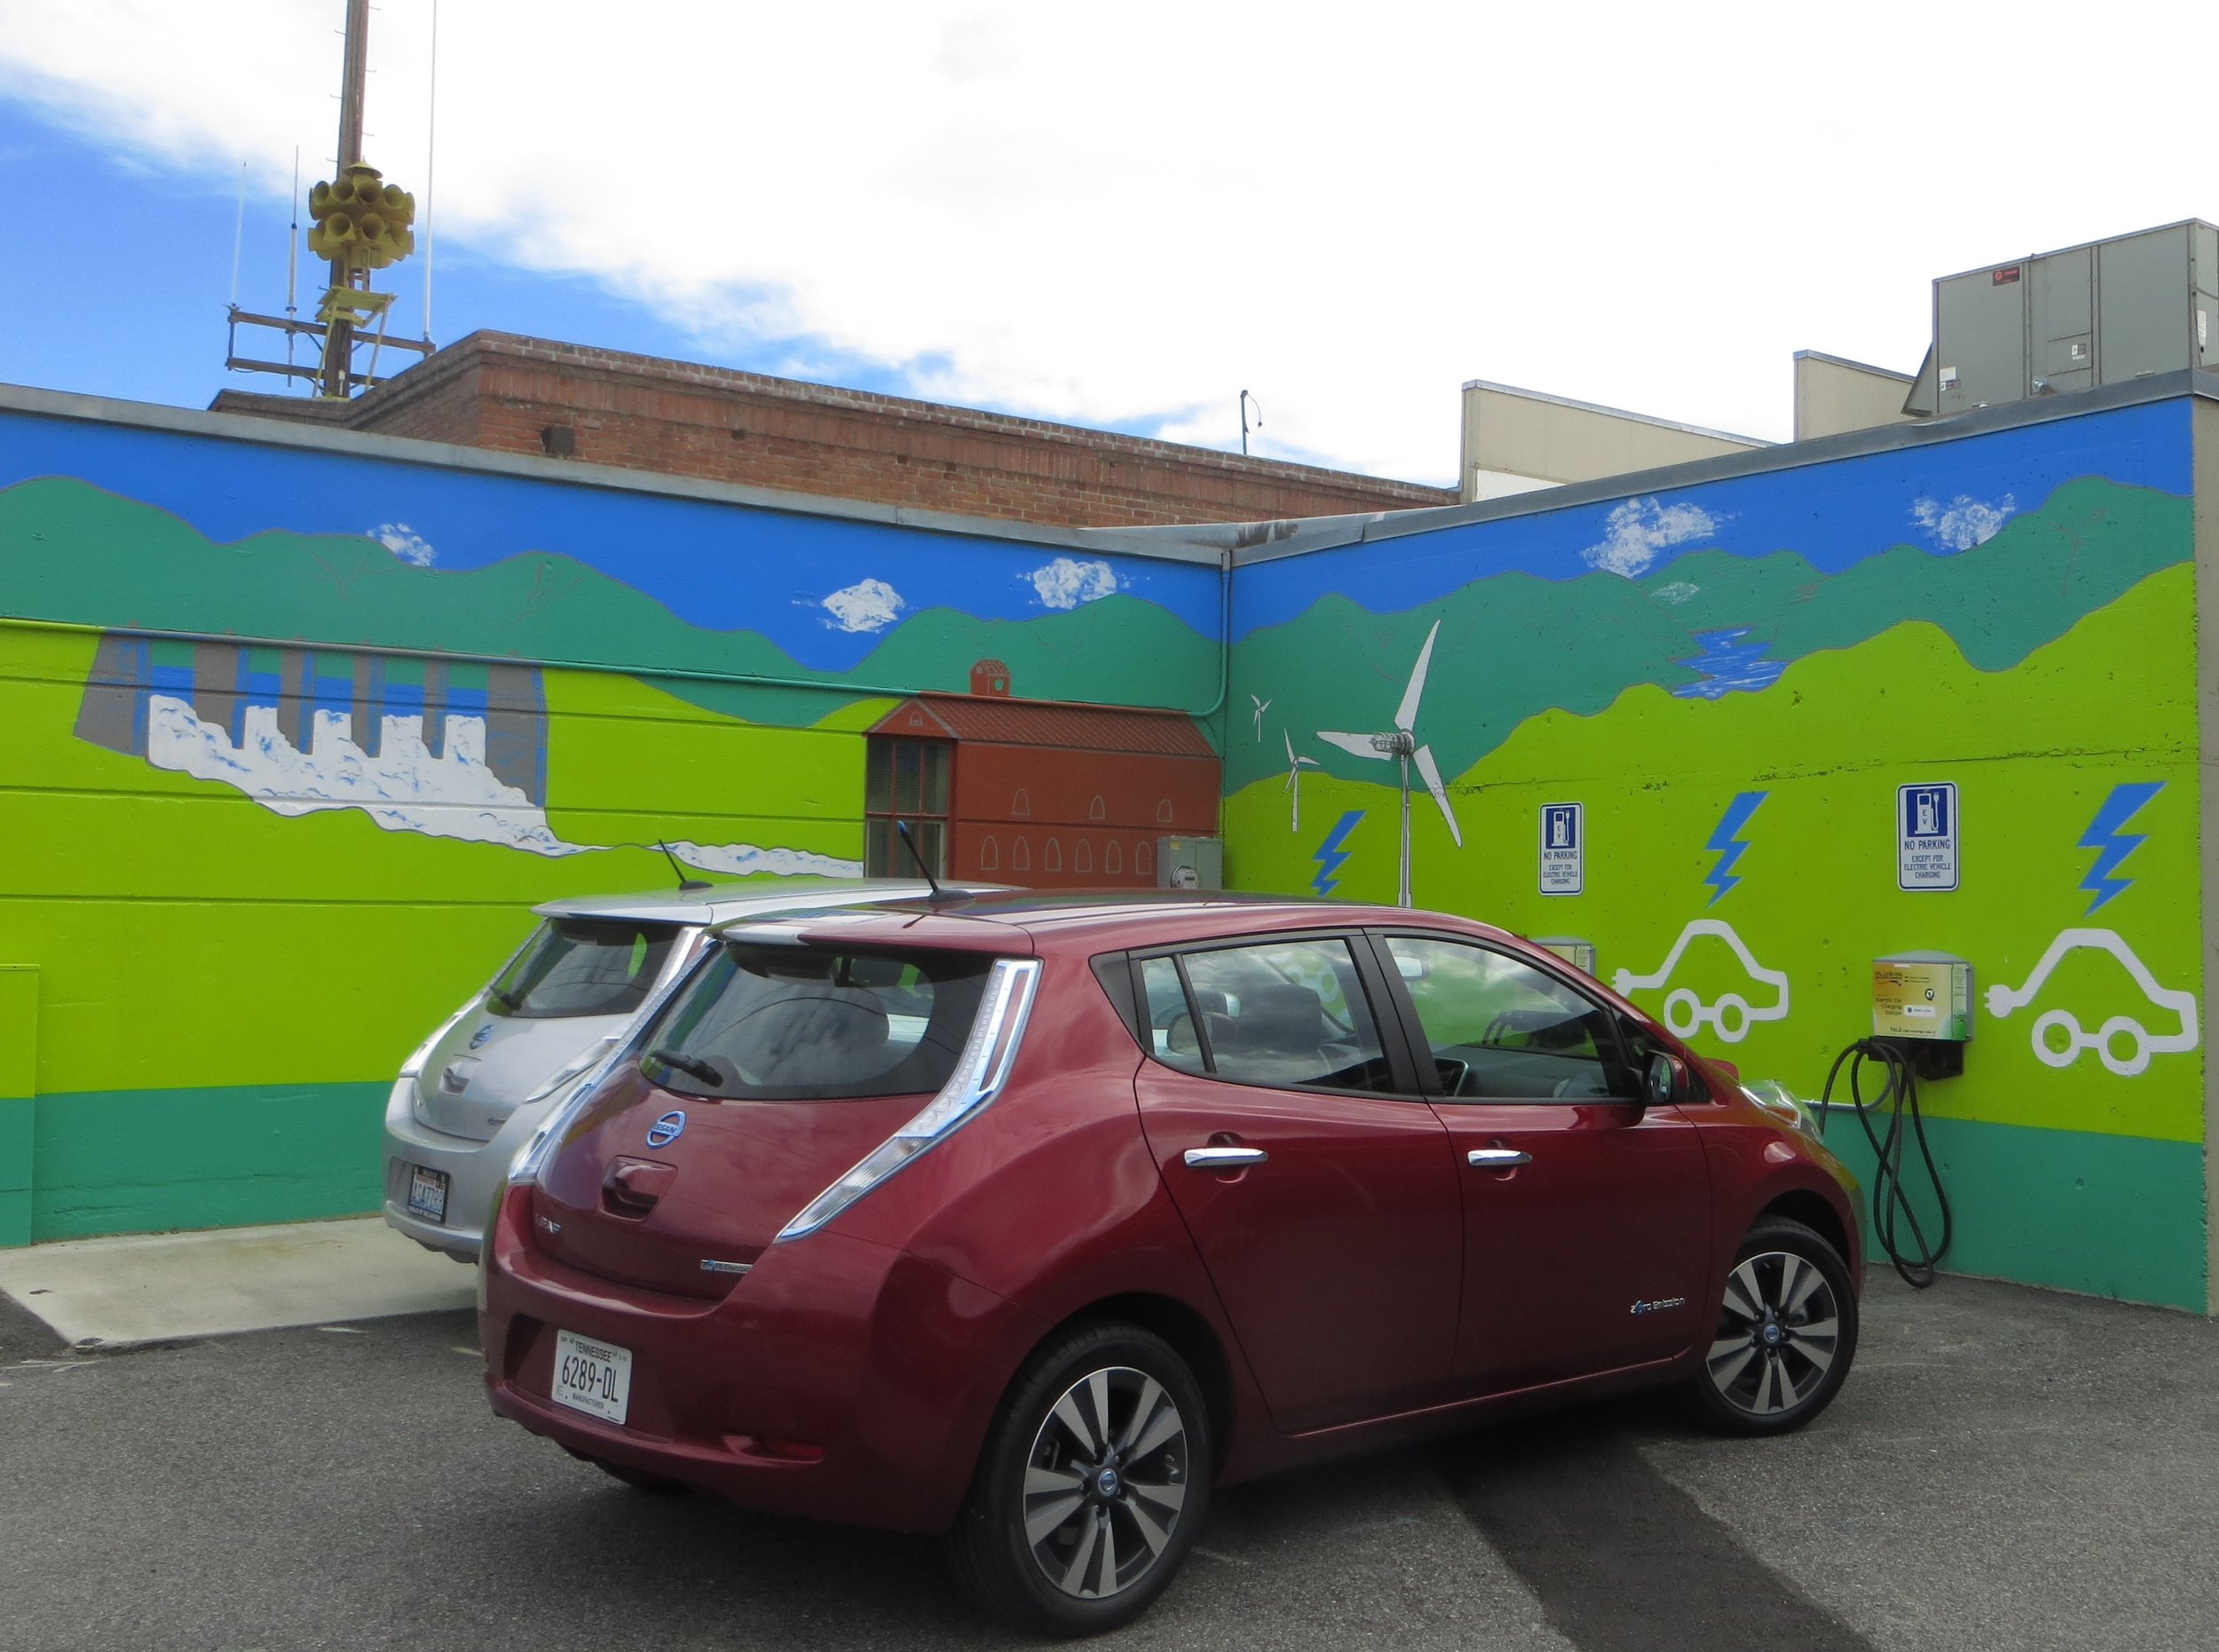 Getting a quick energy boost at the new charging stations in Chelan.